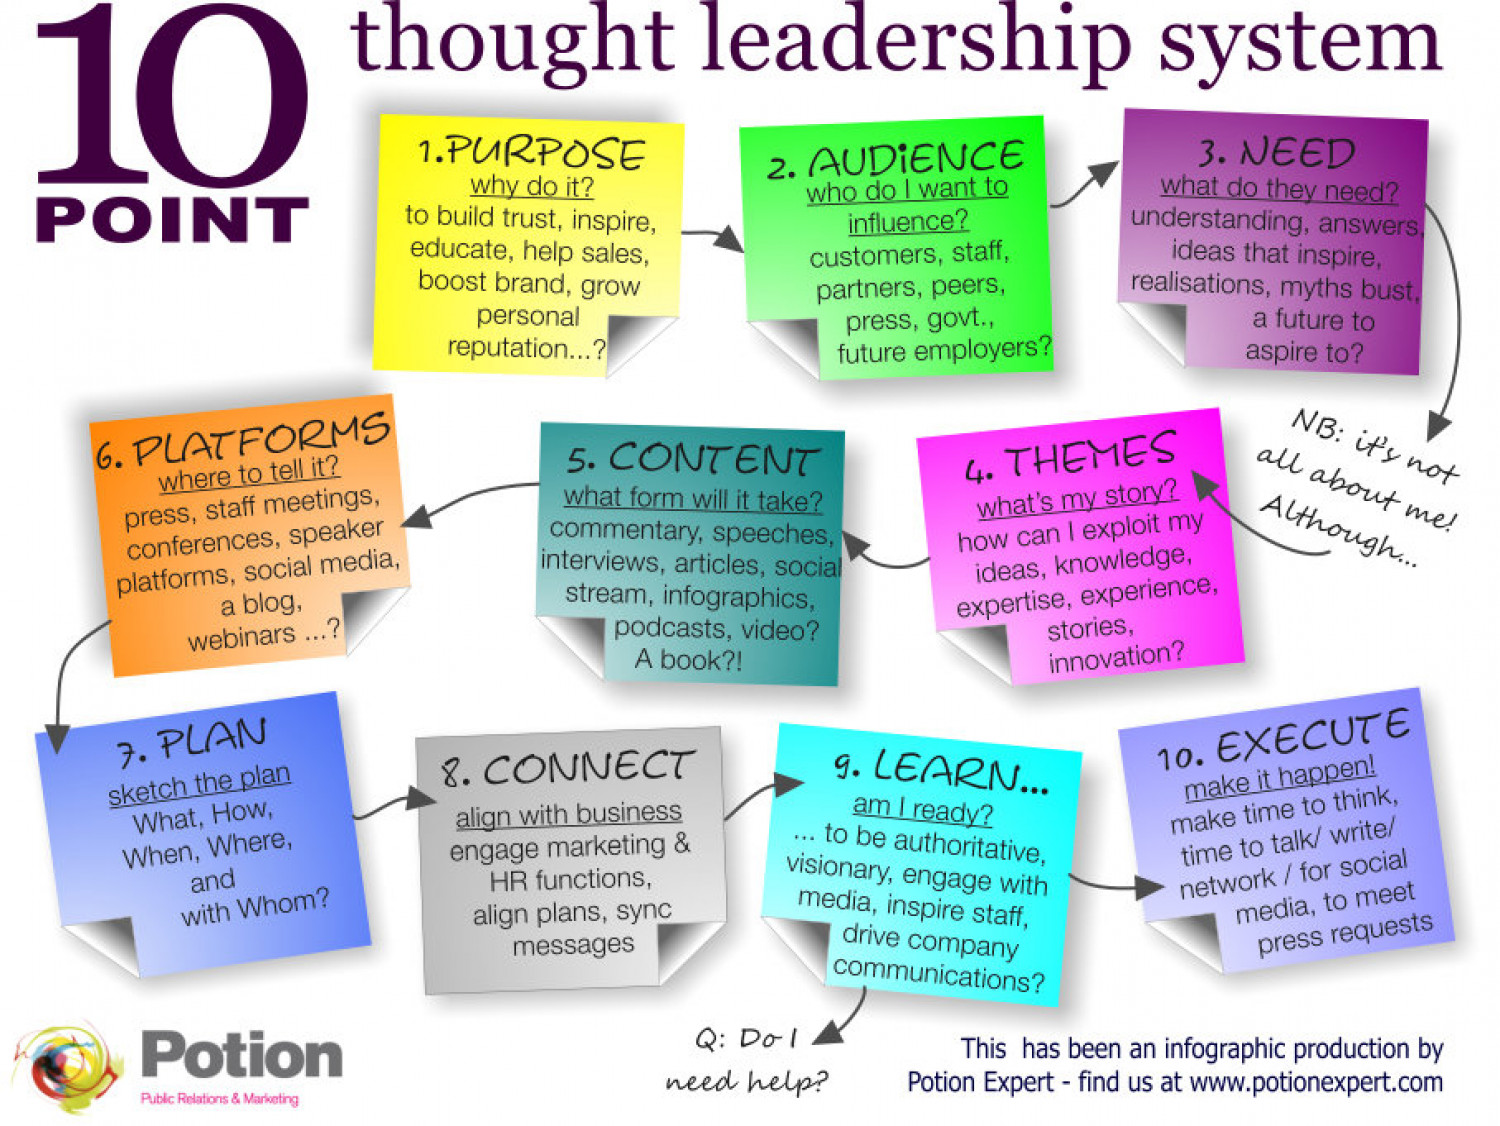 10 point thought leadership system Infographic